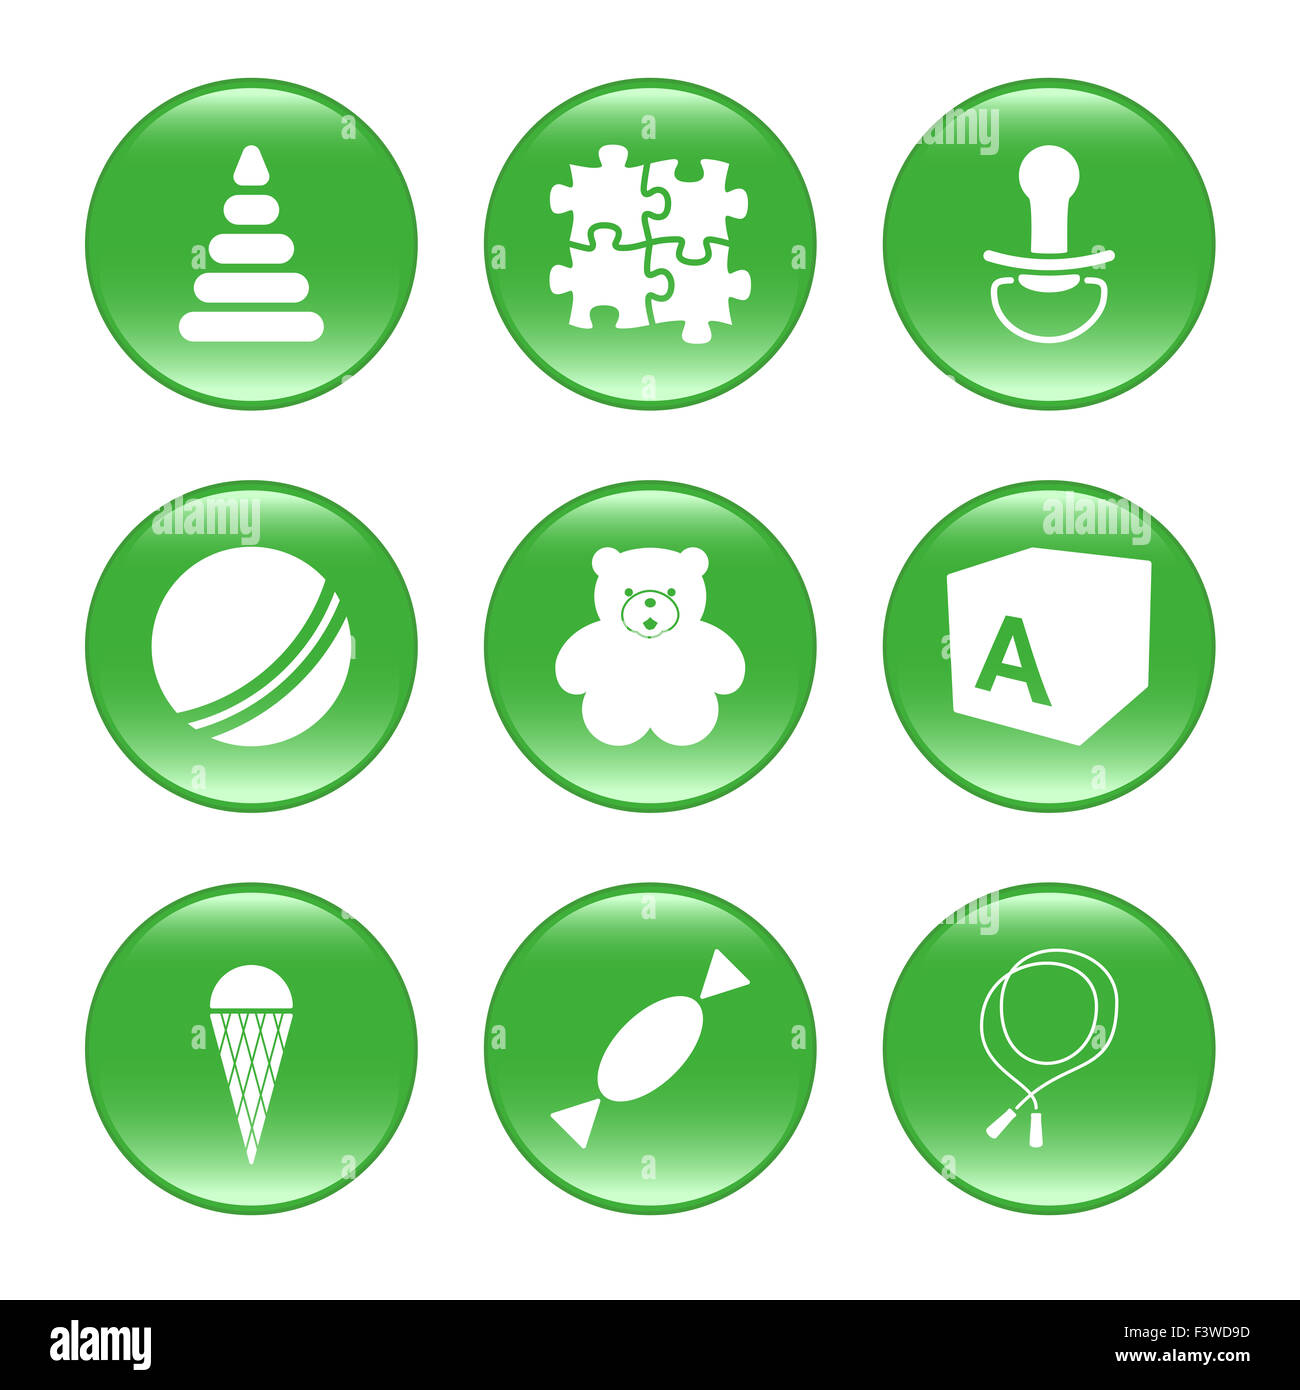 Nursery supplies - vector web icons - Stock Image